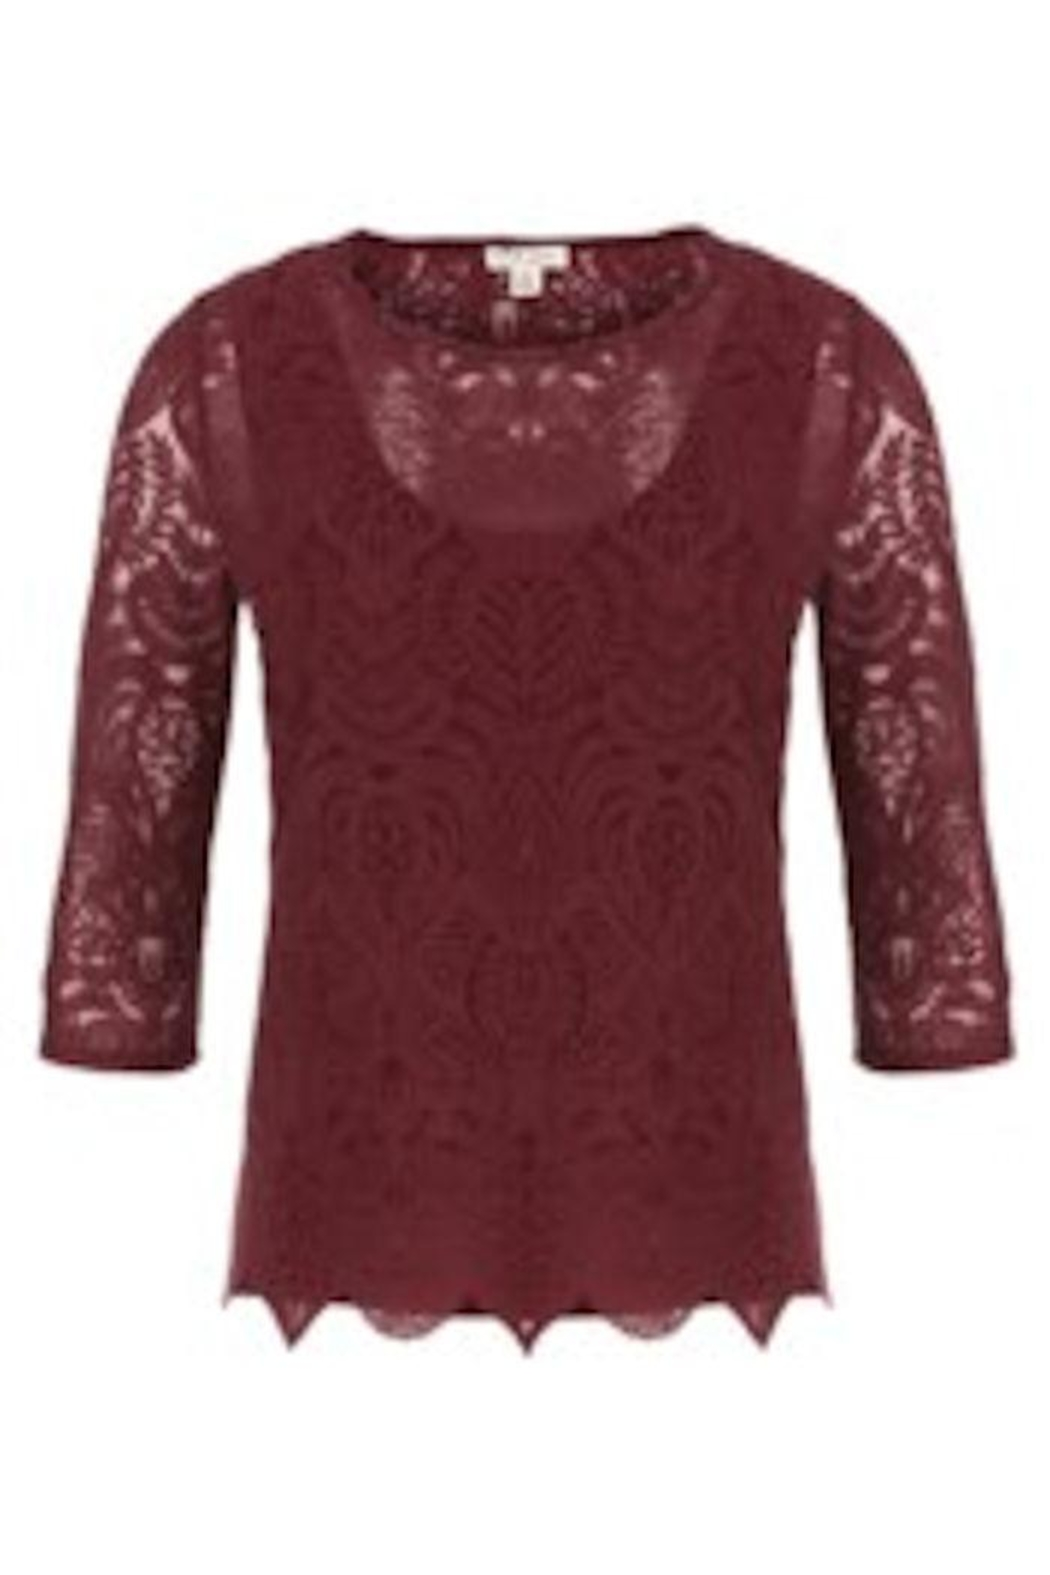 6579c3abe34 Tribal Burgundy Lace Top from Canada by Linda s Fashion — Shoptiques